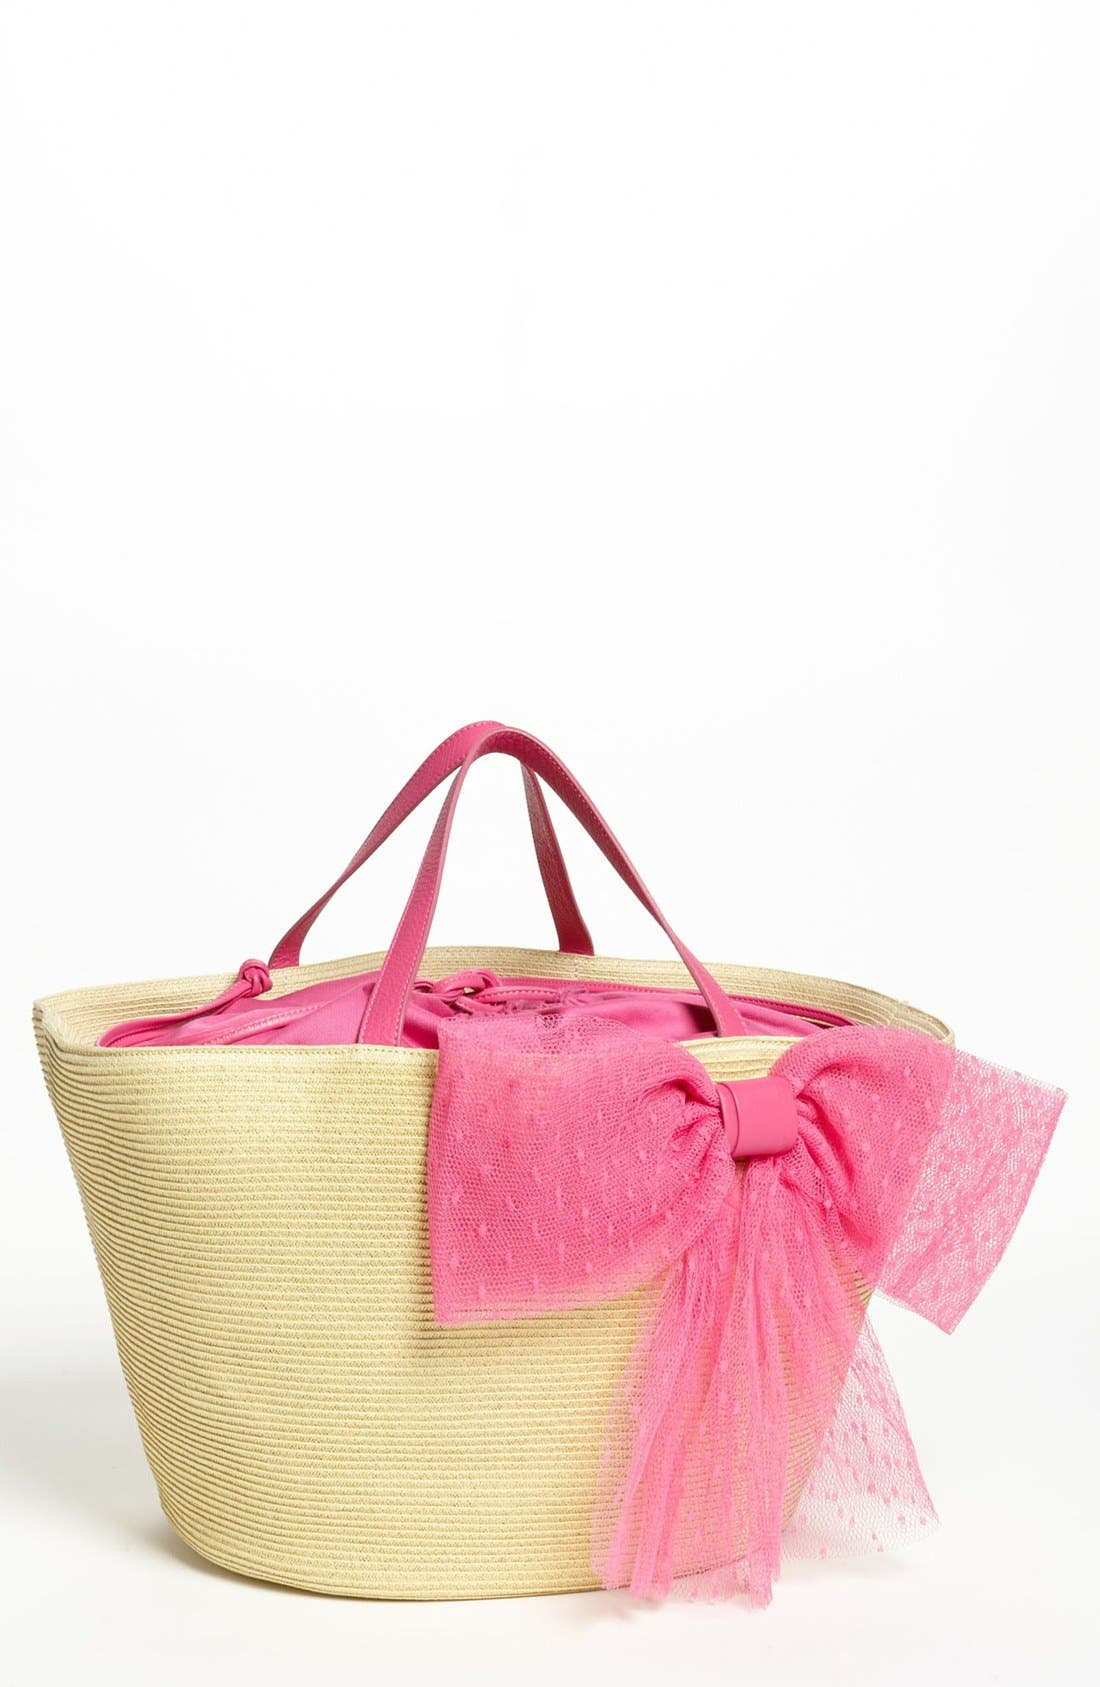 Alternate Image 1 Selected - RED Valentino 'Bow' Straw Tote